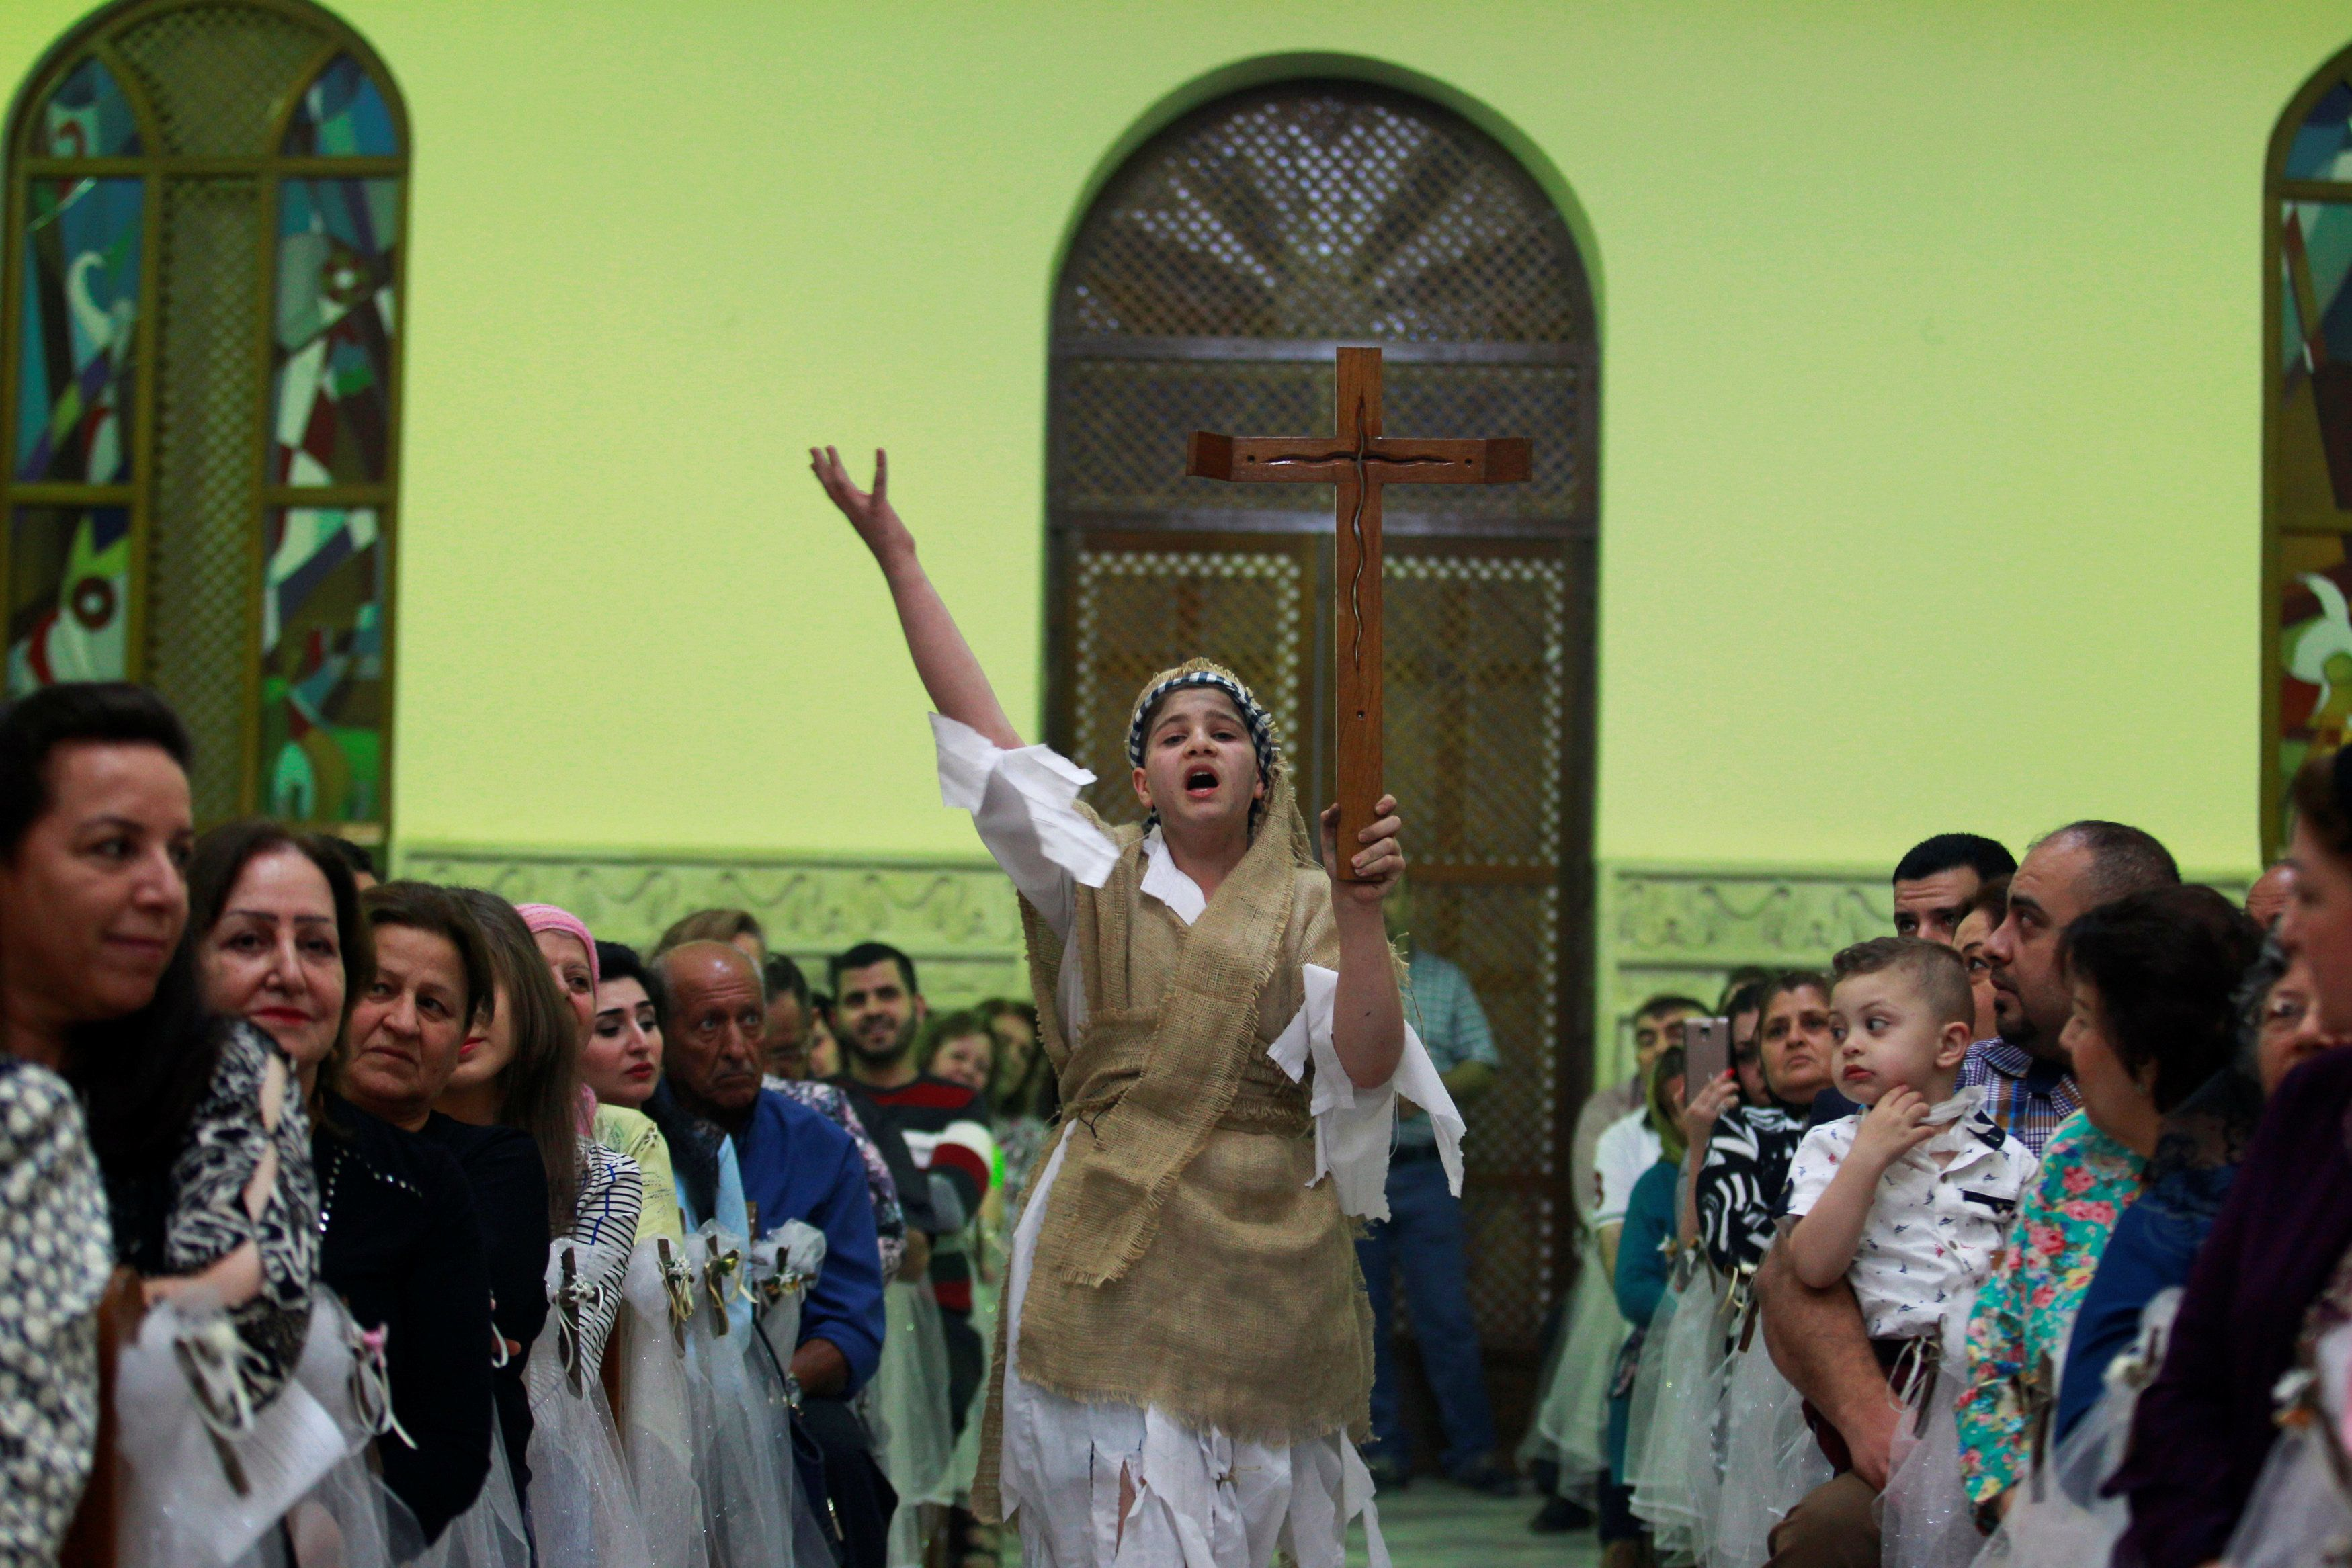 A Mostly Non-Christian Militia Won 2 Of Iraqi Christians' Parliamentary Seats. Now Christians Want Trump To